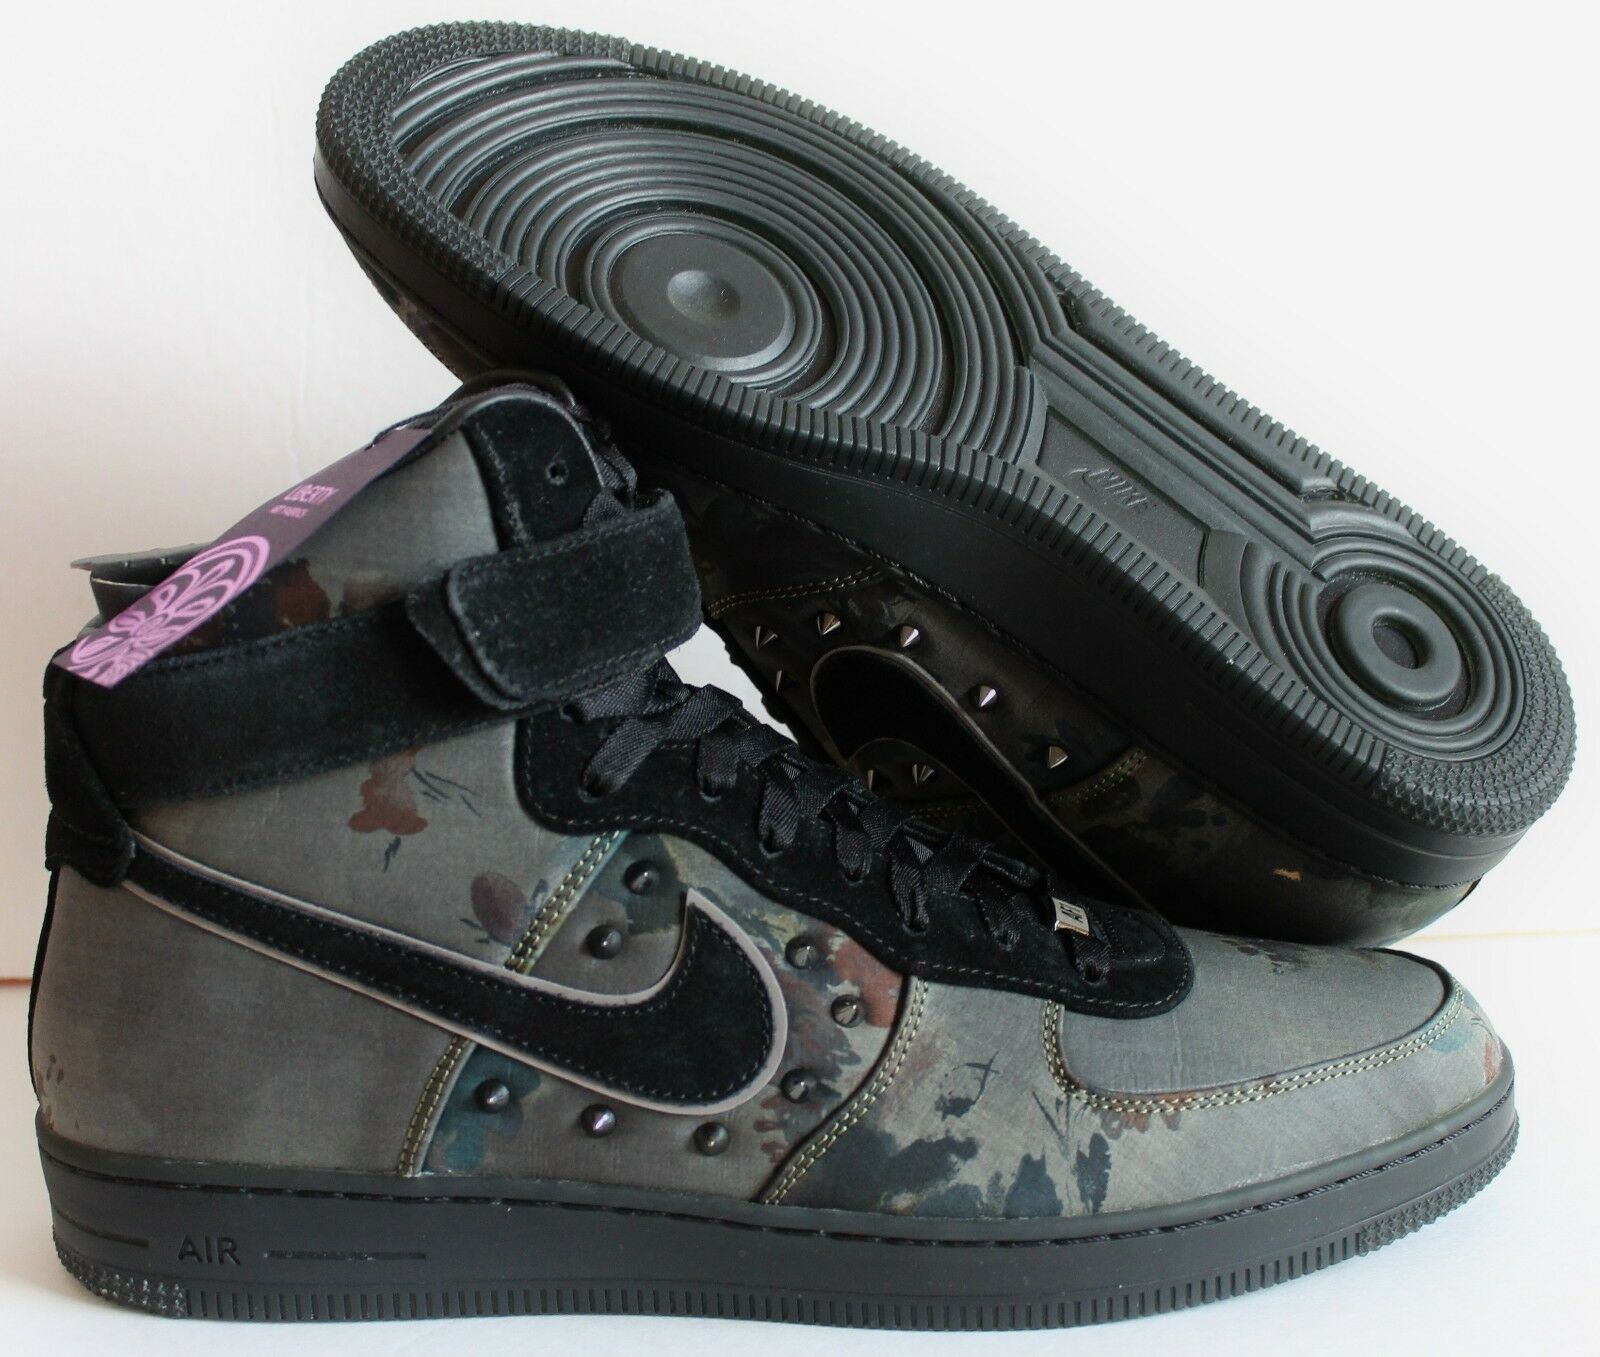 new style 2b31d 2a99a on sale NIKE AIR FORCE 1 AF1 DOWNTOWN NRG BLACK LIBERTY OF LONDON SZ 14 ...